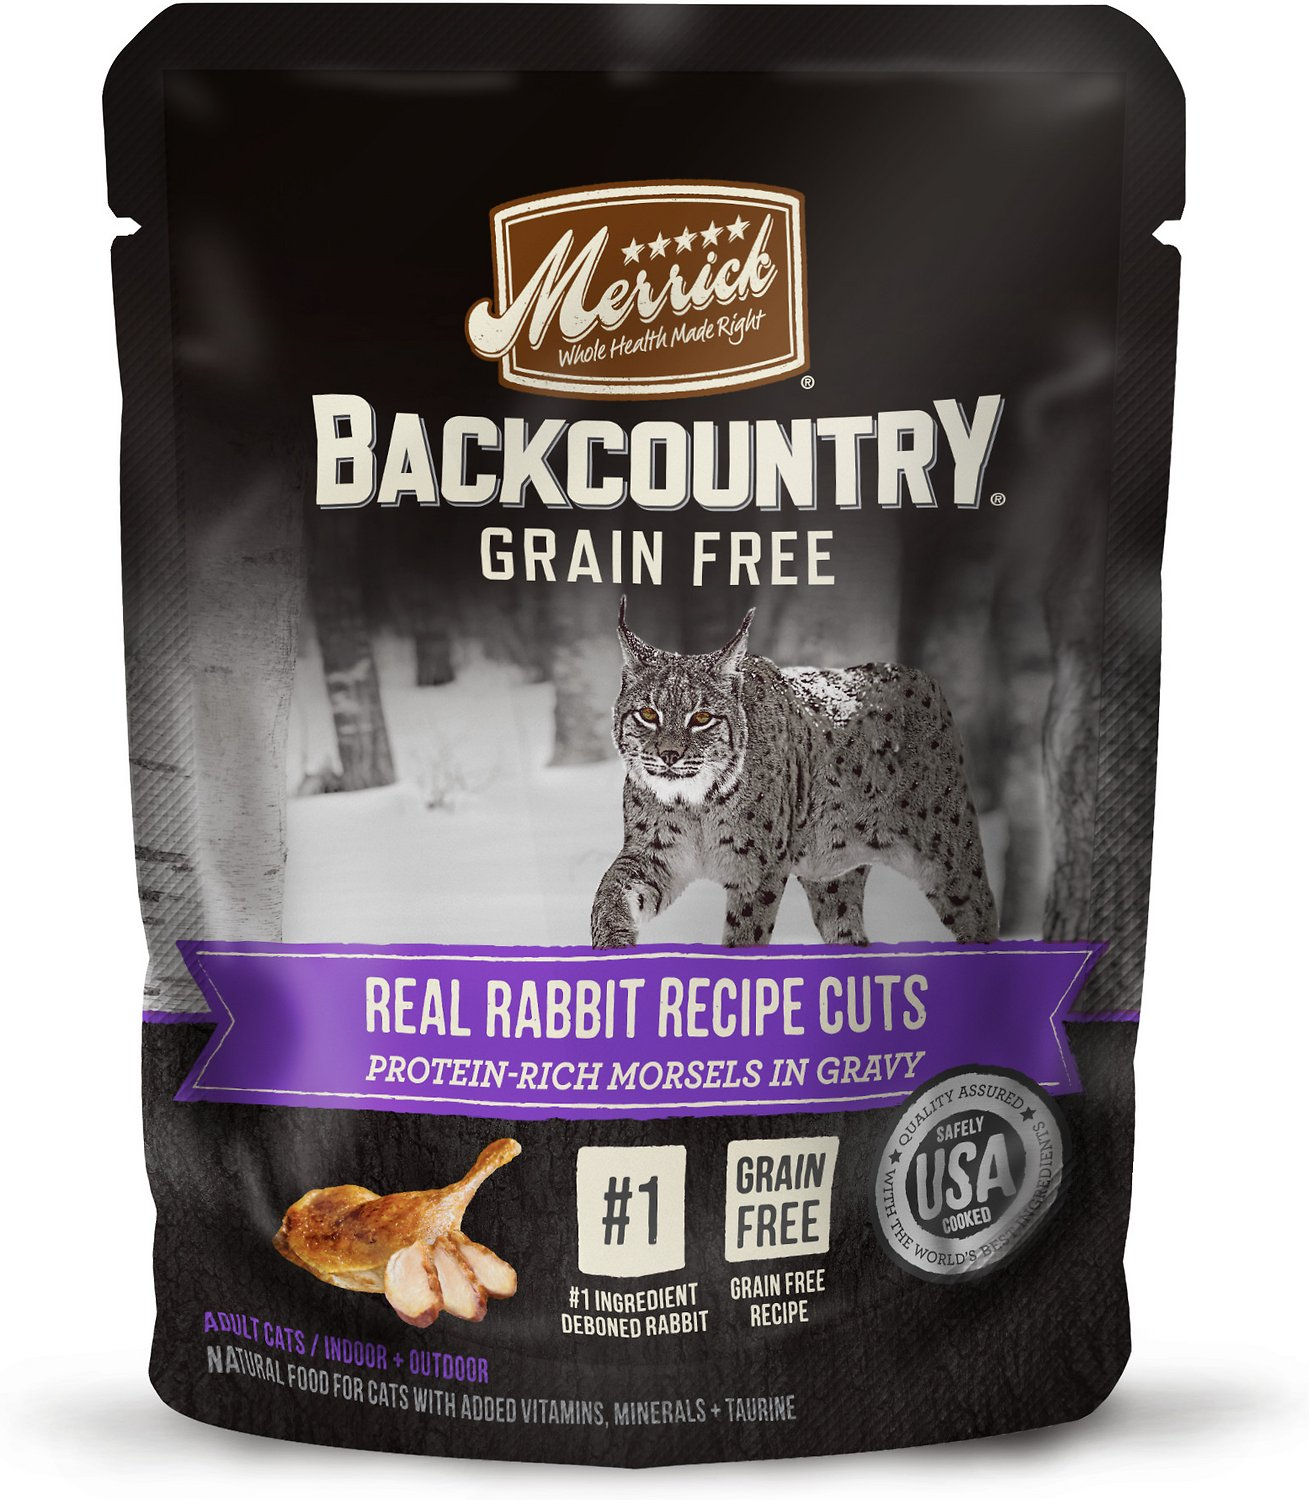 Merrick Backcountry Grain-Free Morsels in Gravy Real Rabbit Recipe Cuts Cat Food Pouches, 3-oz ...